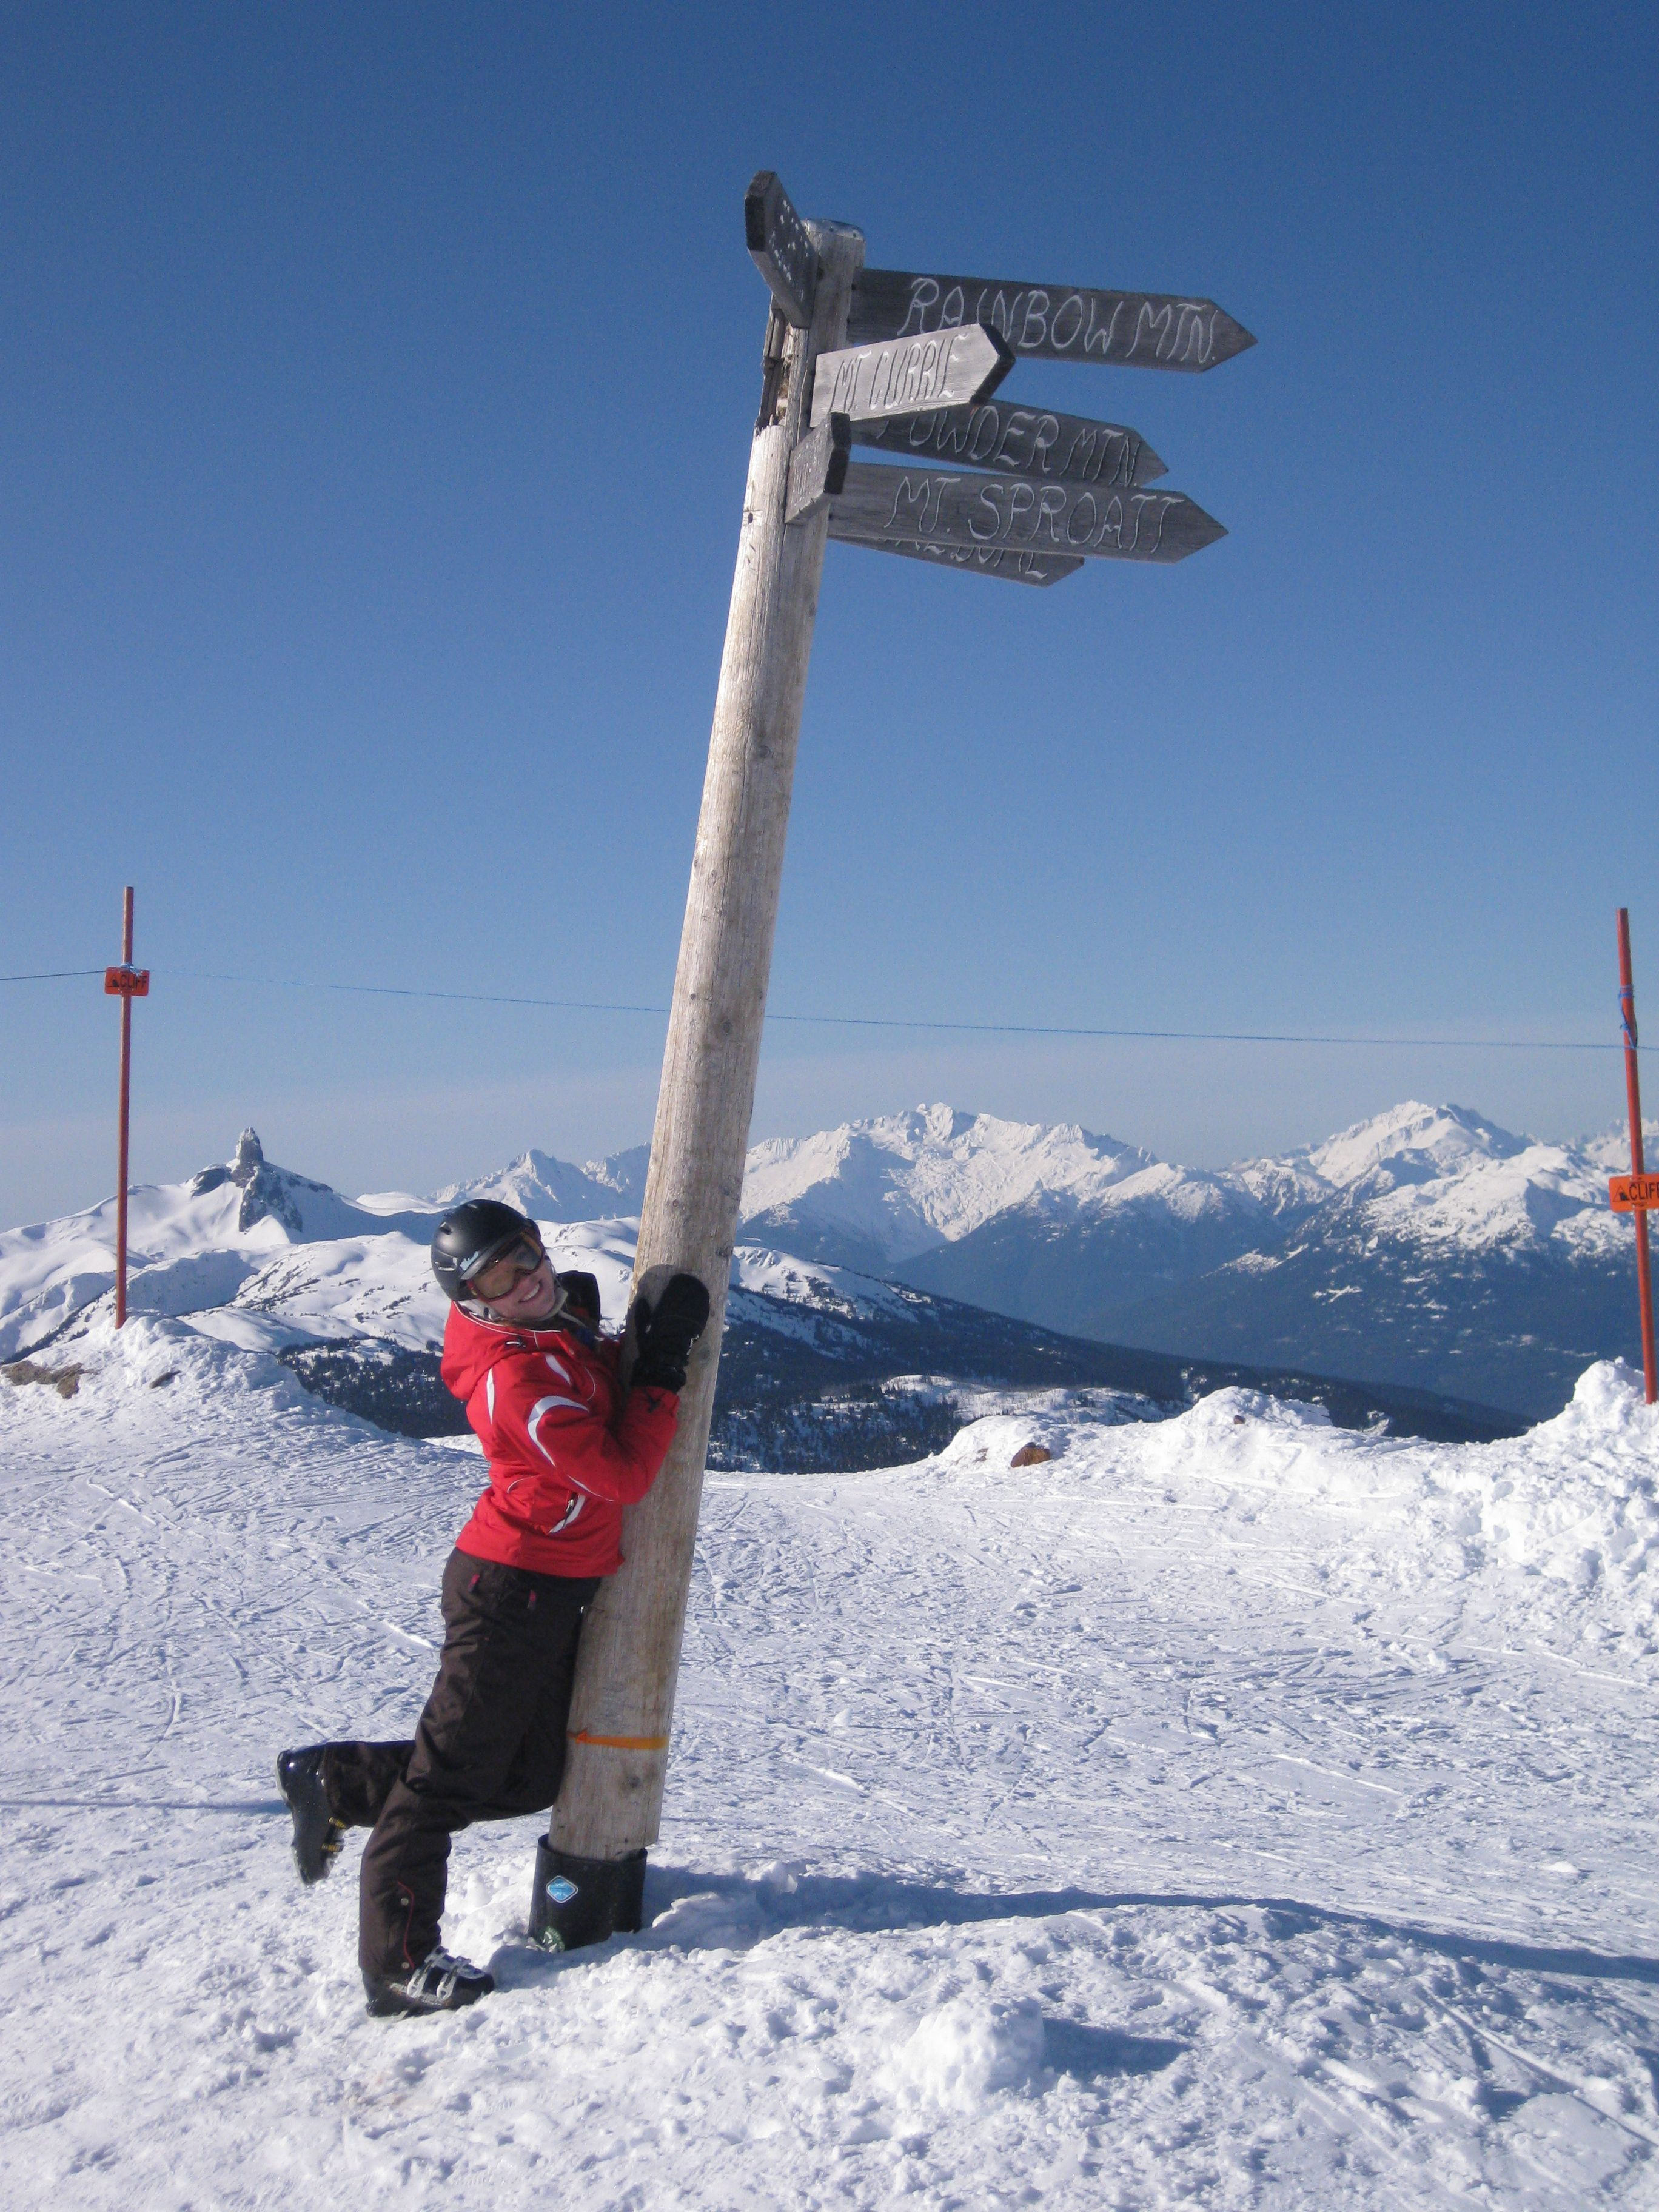 So many places to go and explore http://www.oysterworldwide.com/gap-year/canada-whistler-blackcomb-ski-instructor-jobs/